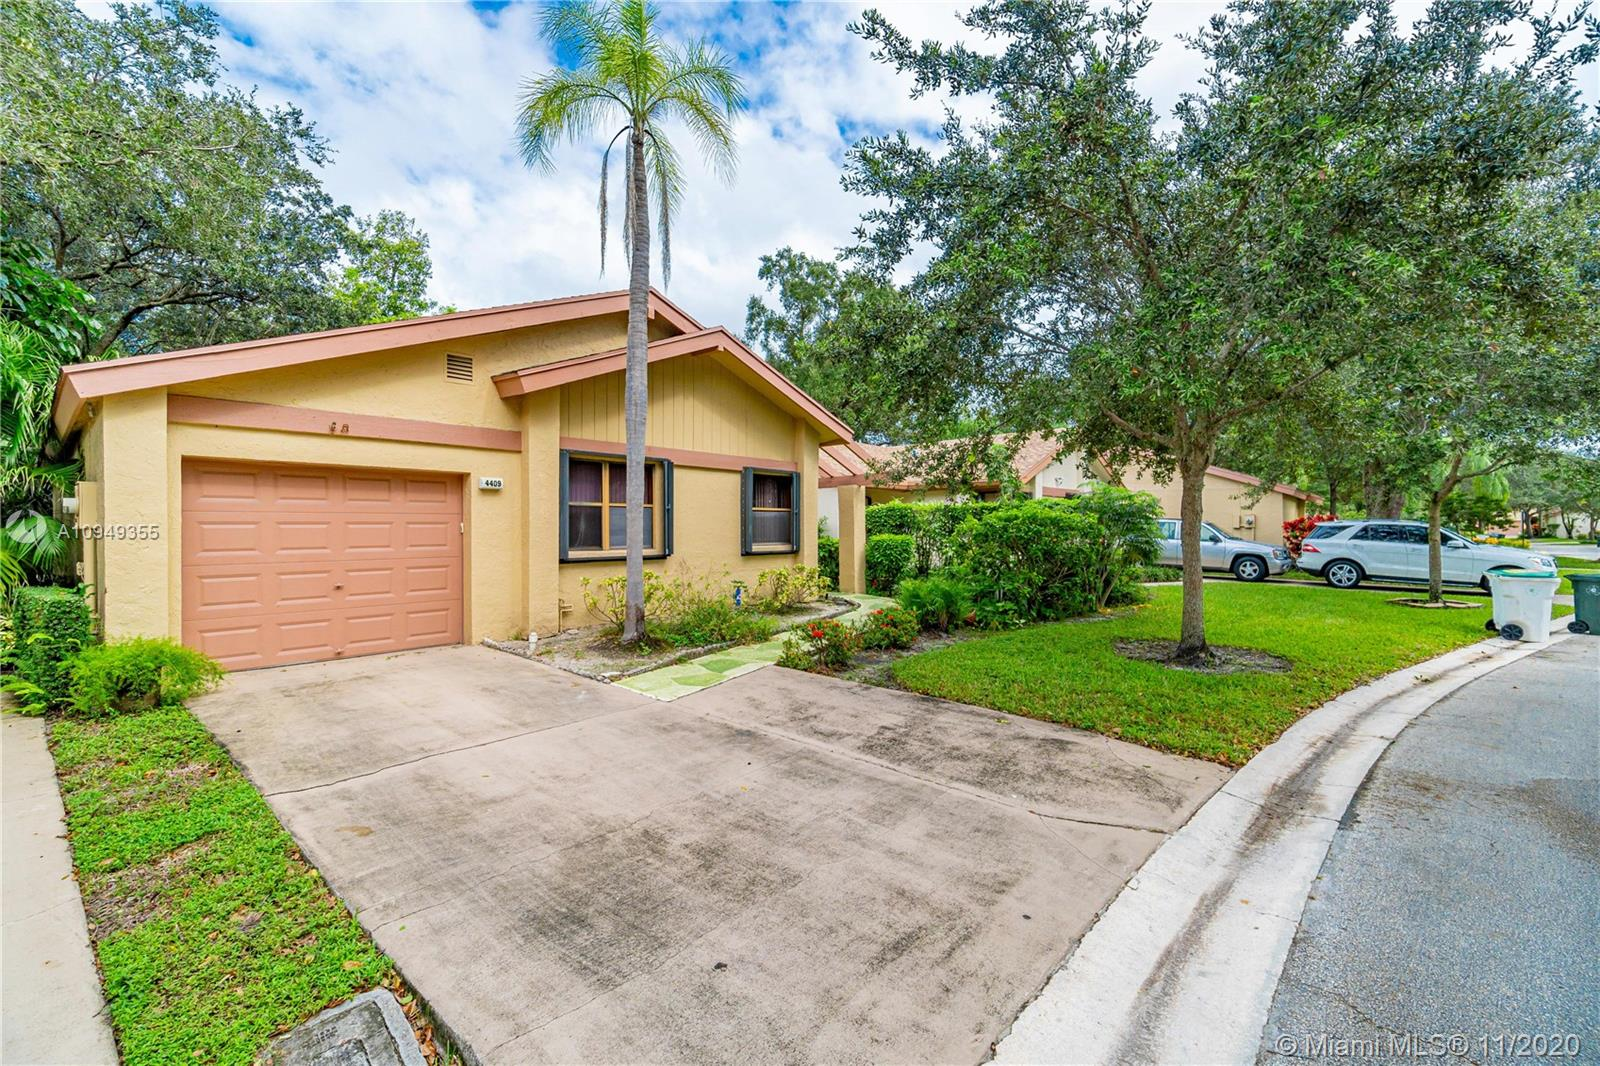 This 2/2/1 single family home in the township community comes with a split bedroom floor plan , tile flooring throughout , newer a/c 2017 and roof 2009, accordion storm shutters throughout. closed in patio . Just a short walk to the community pool and across the street from the main club house with resort style amenities: hobby rooms, fitness center ,tennis courts and a large theater with live entertainment and the main Olympic size pool and hot tub. the community is centrally located close to public transportation,mayor roadways and shopping. Association requires 1 person to be 55 or older. and 10% down.